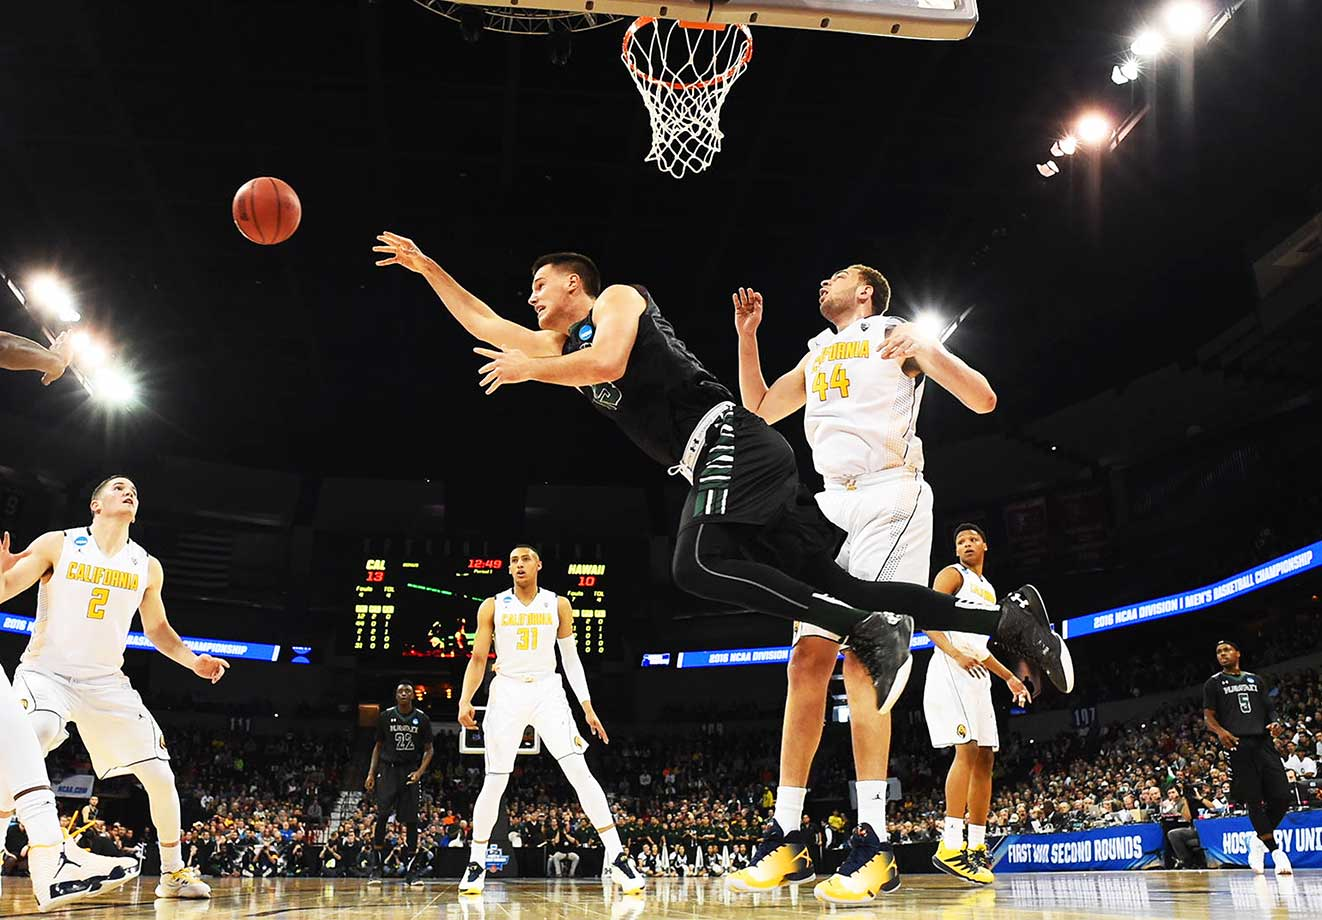 Stefan Jovanovic makes an acrobatic play during Hawaii's win over Cal.